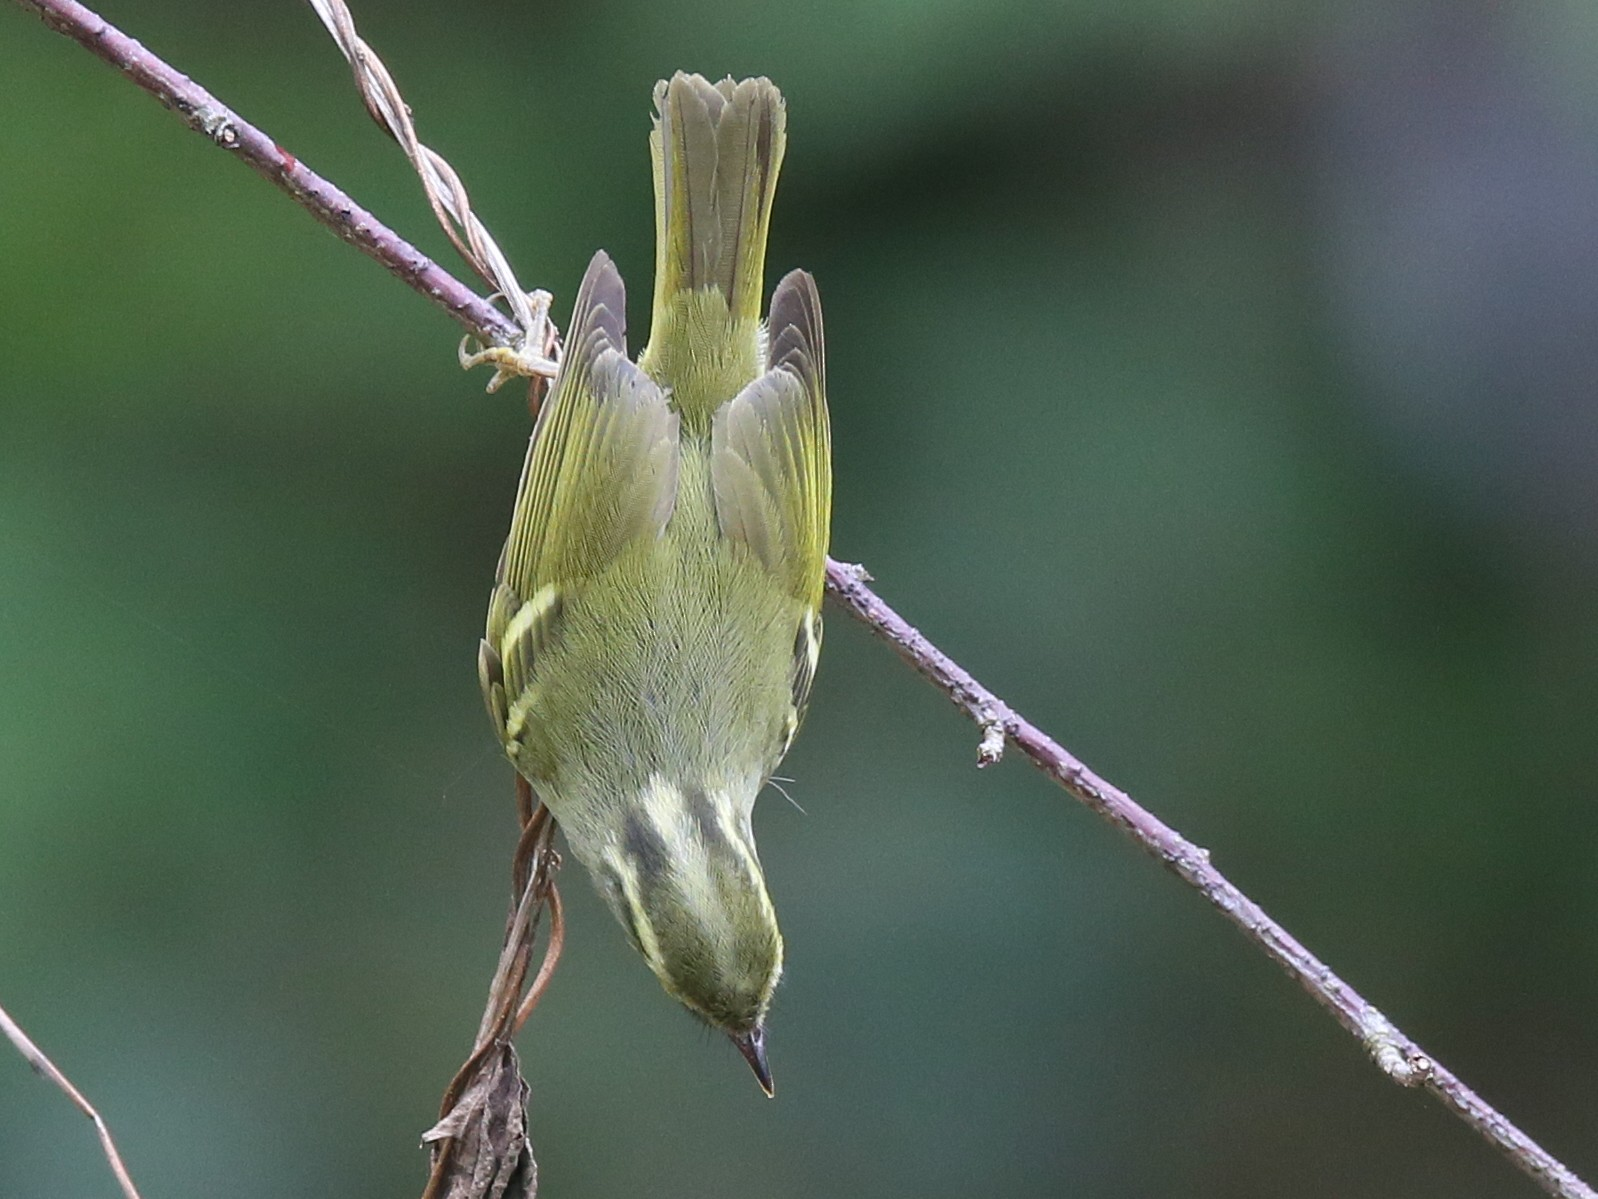 Claudia's Leaf Warbler - Ting-Wei (廷維) HUNG (洪)